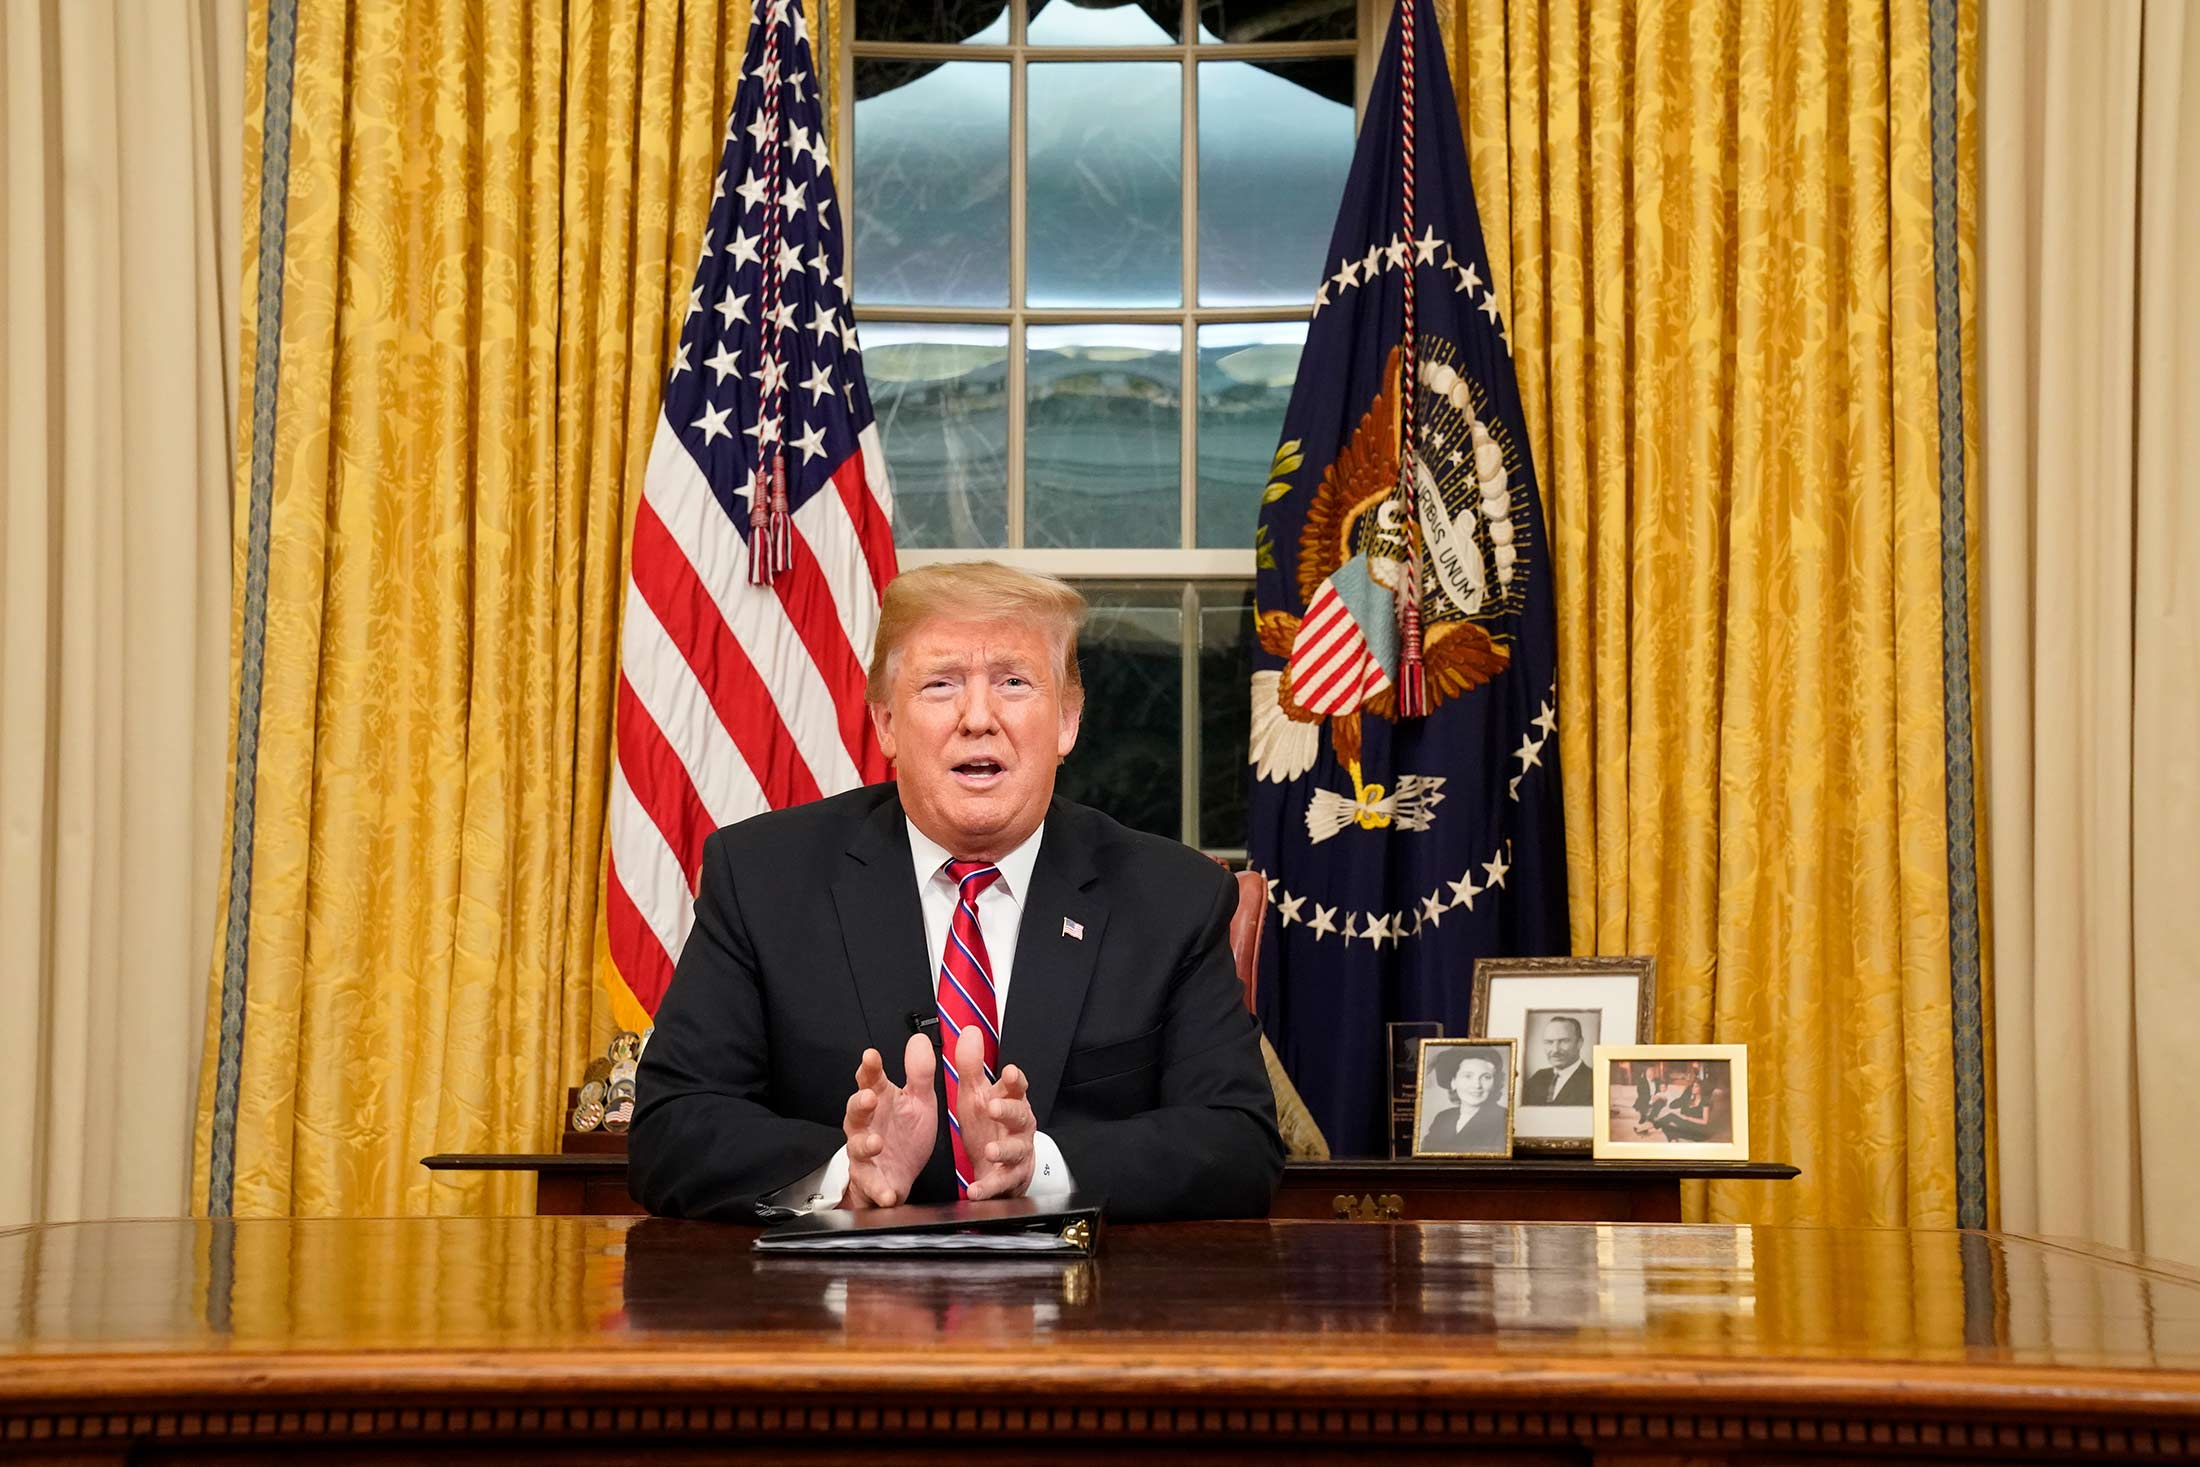 President Trump speaking from the Oval Office.